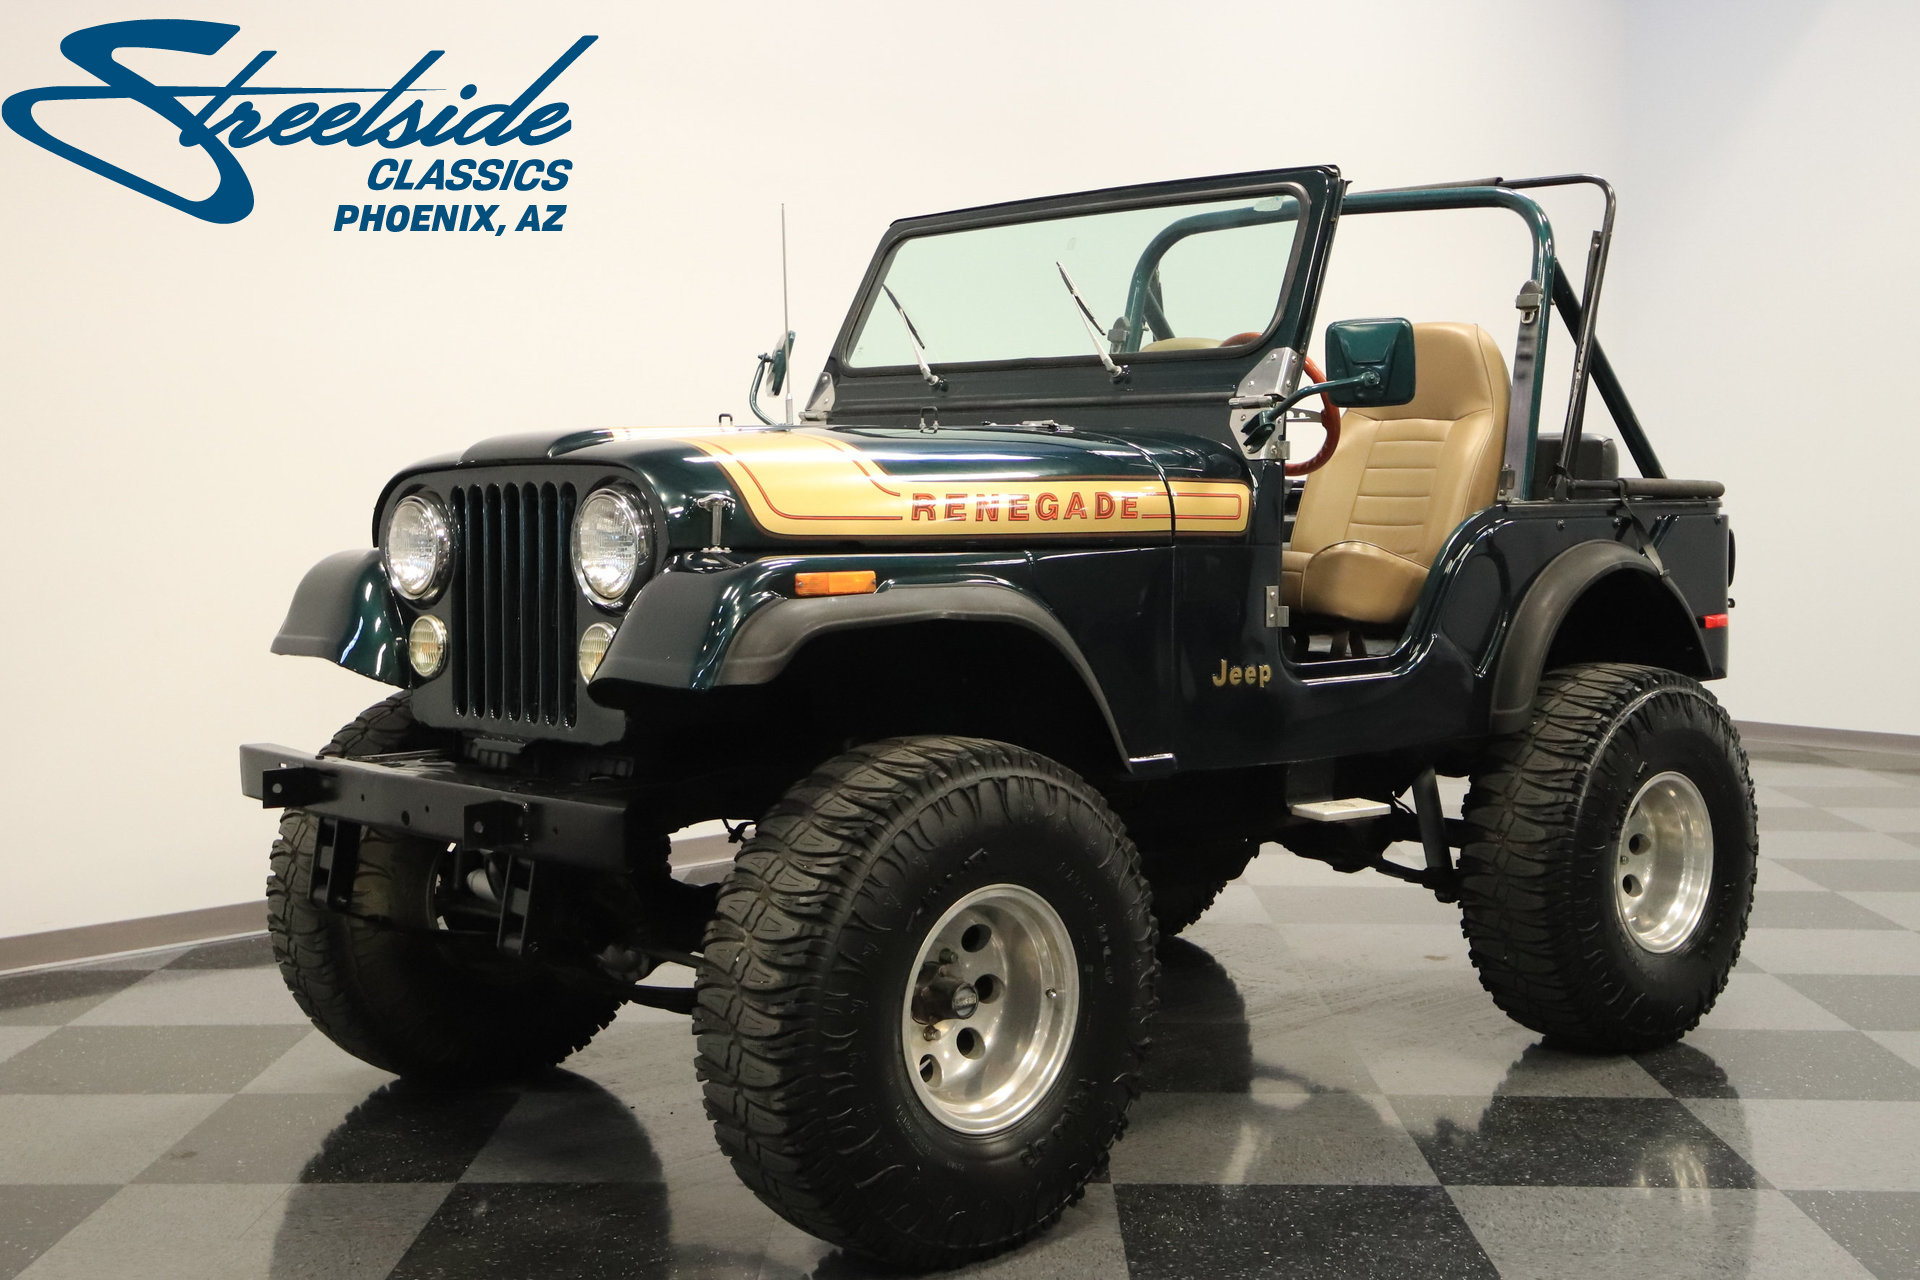 1976 jeep cj5 streetside classics the nation 39 s trusted classic car consignment dealer. Black Bedroom Furniture Sets. Home Design Ideas